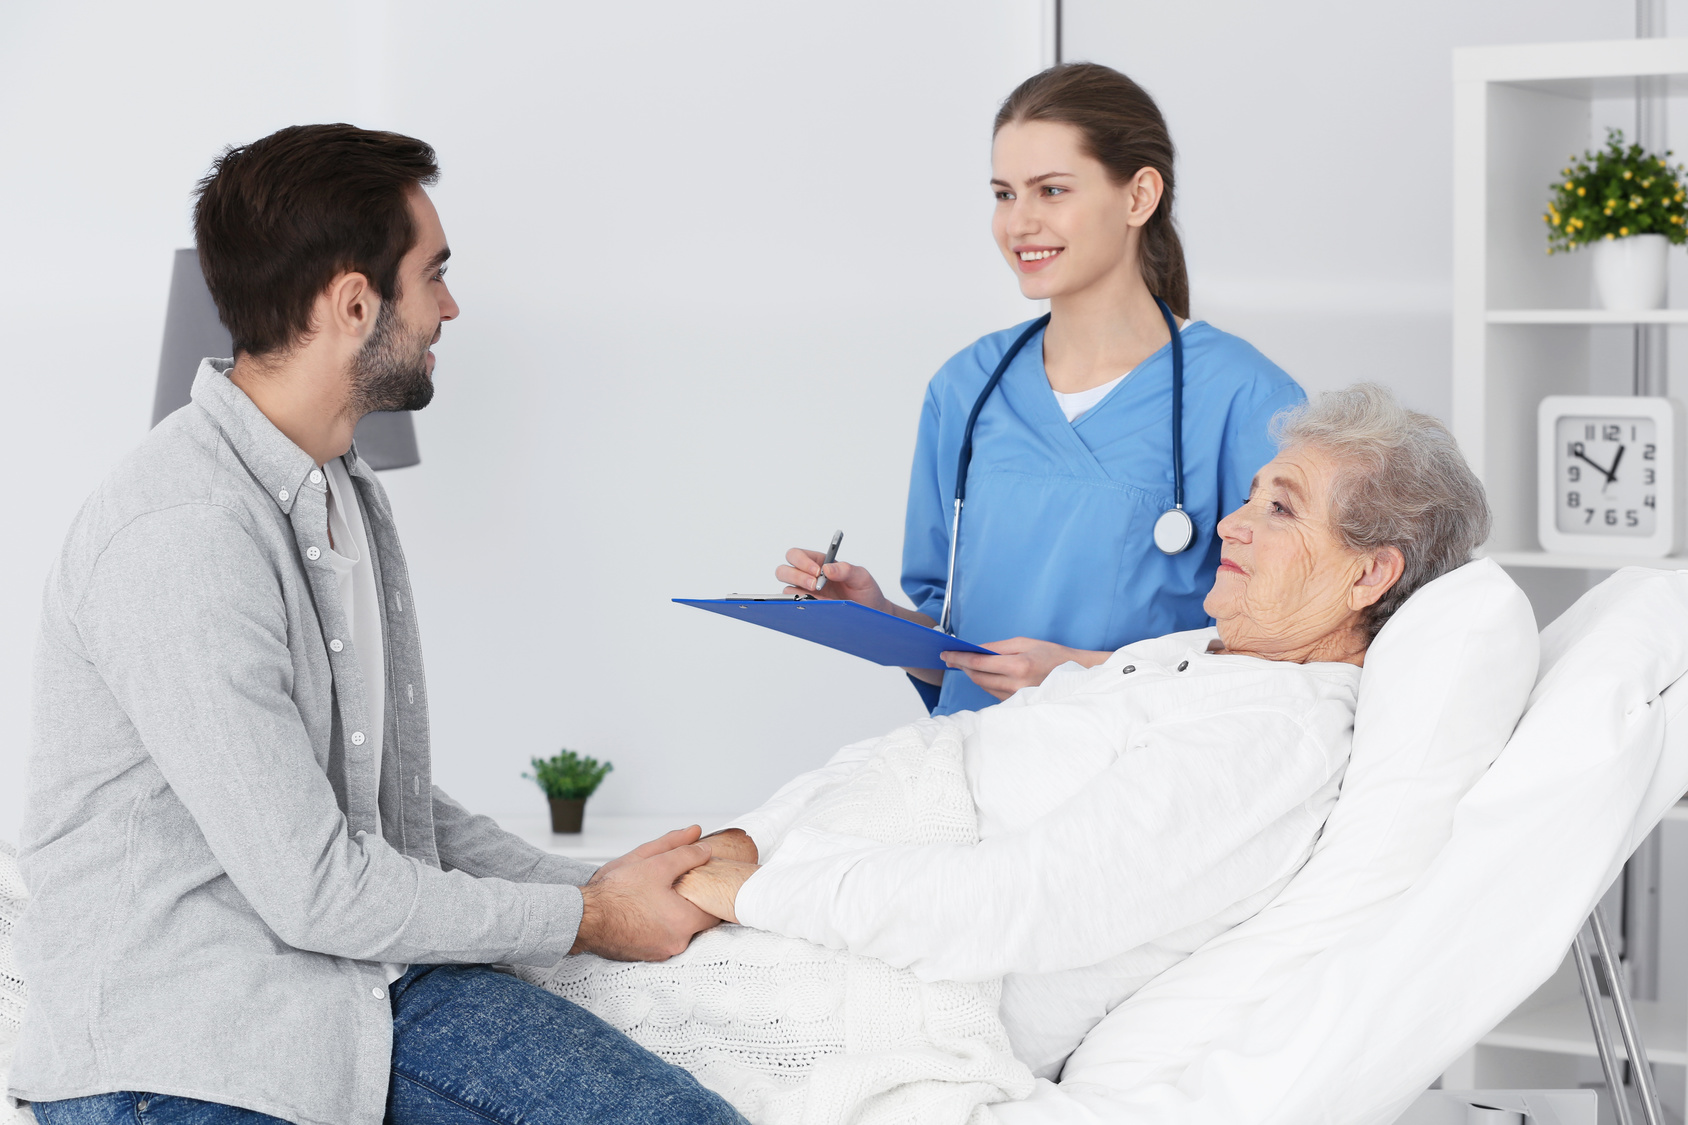 Grandmother, grandson and doctor at hospital